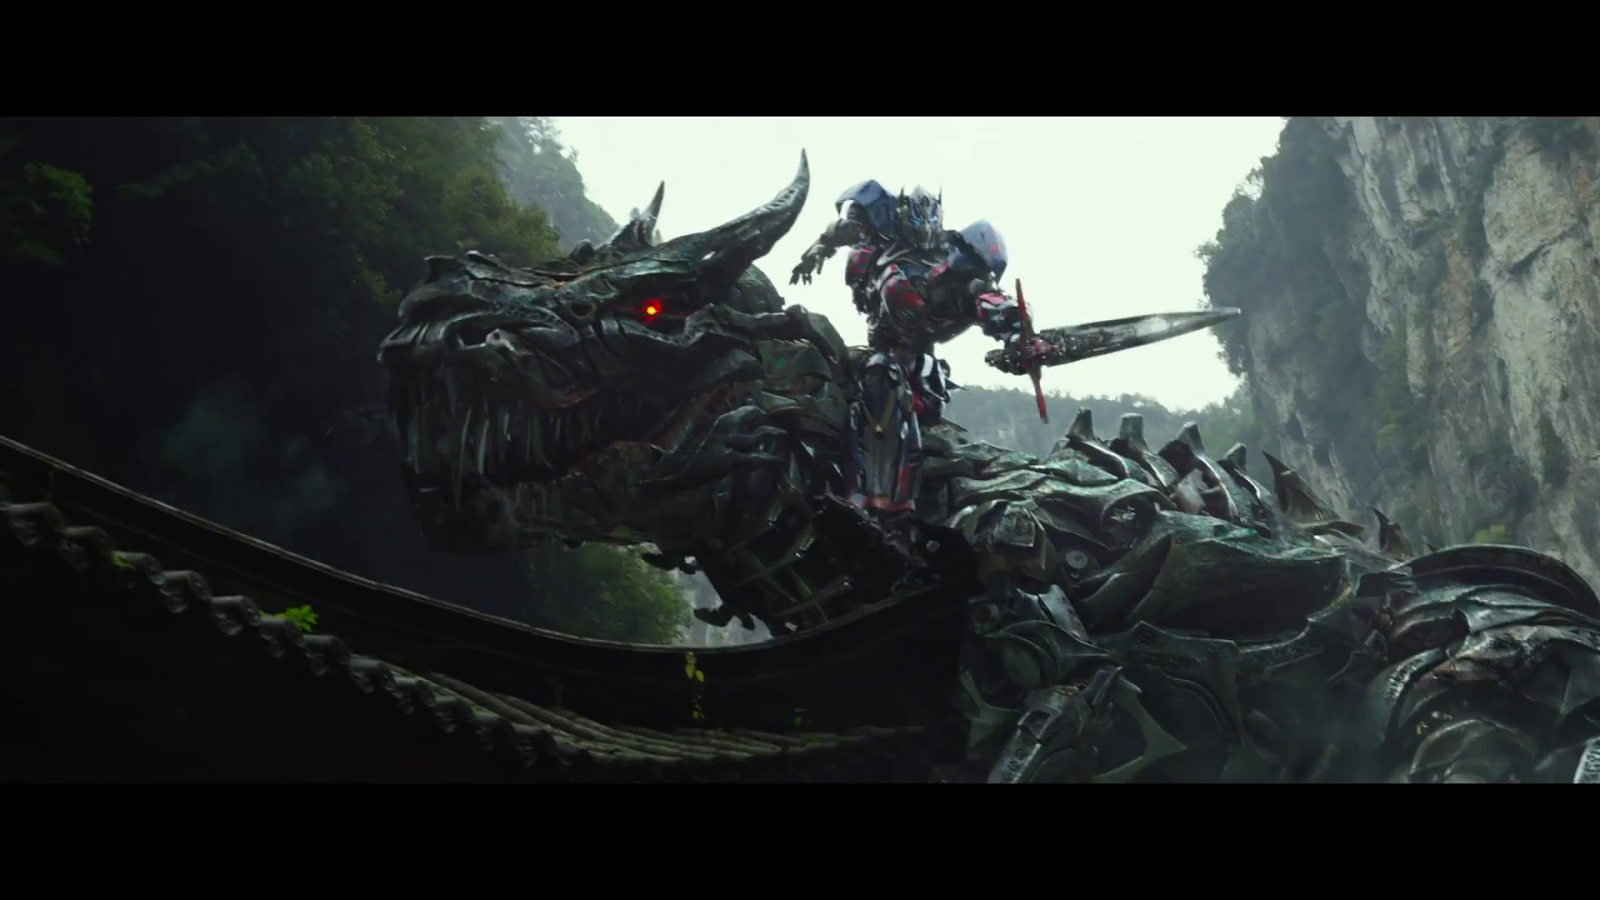 Transformers 4 Movie Trailer : Teaser Trailer